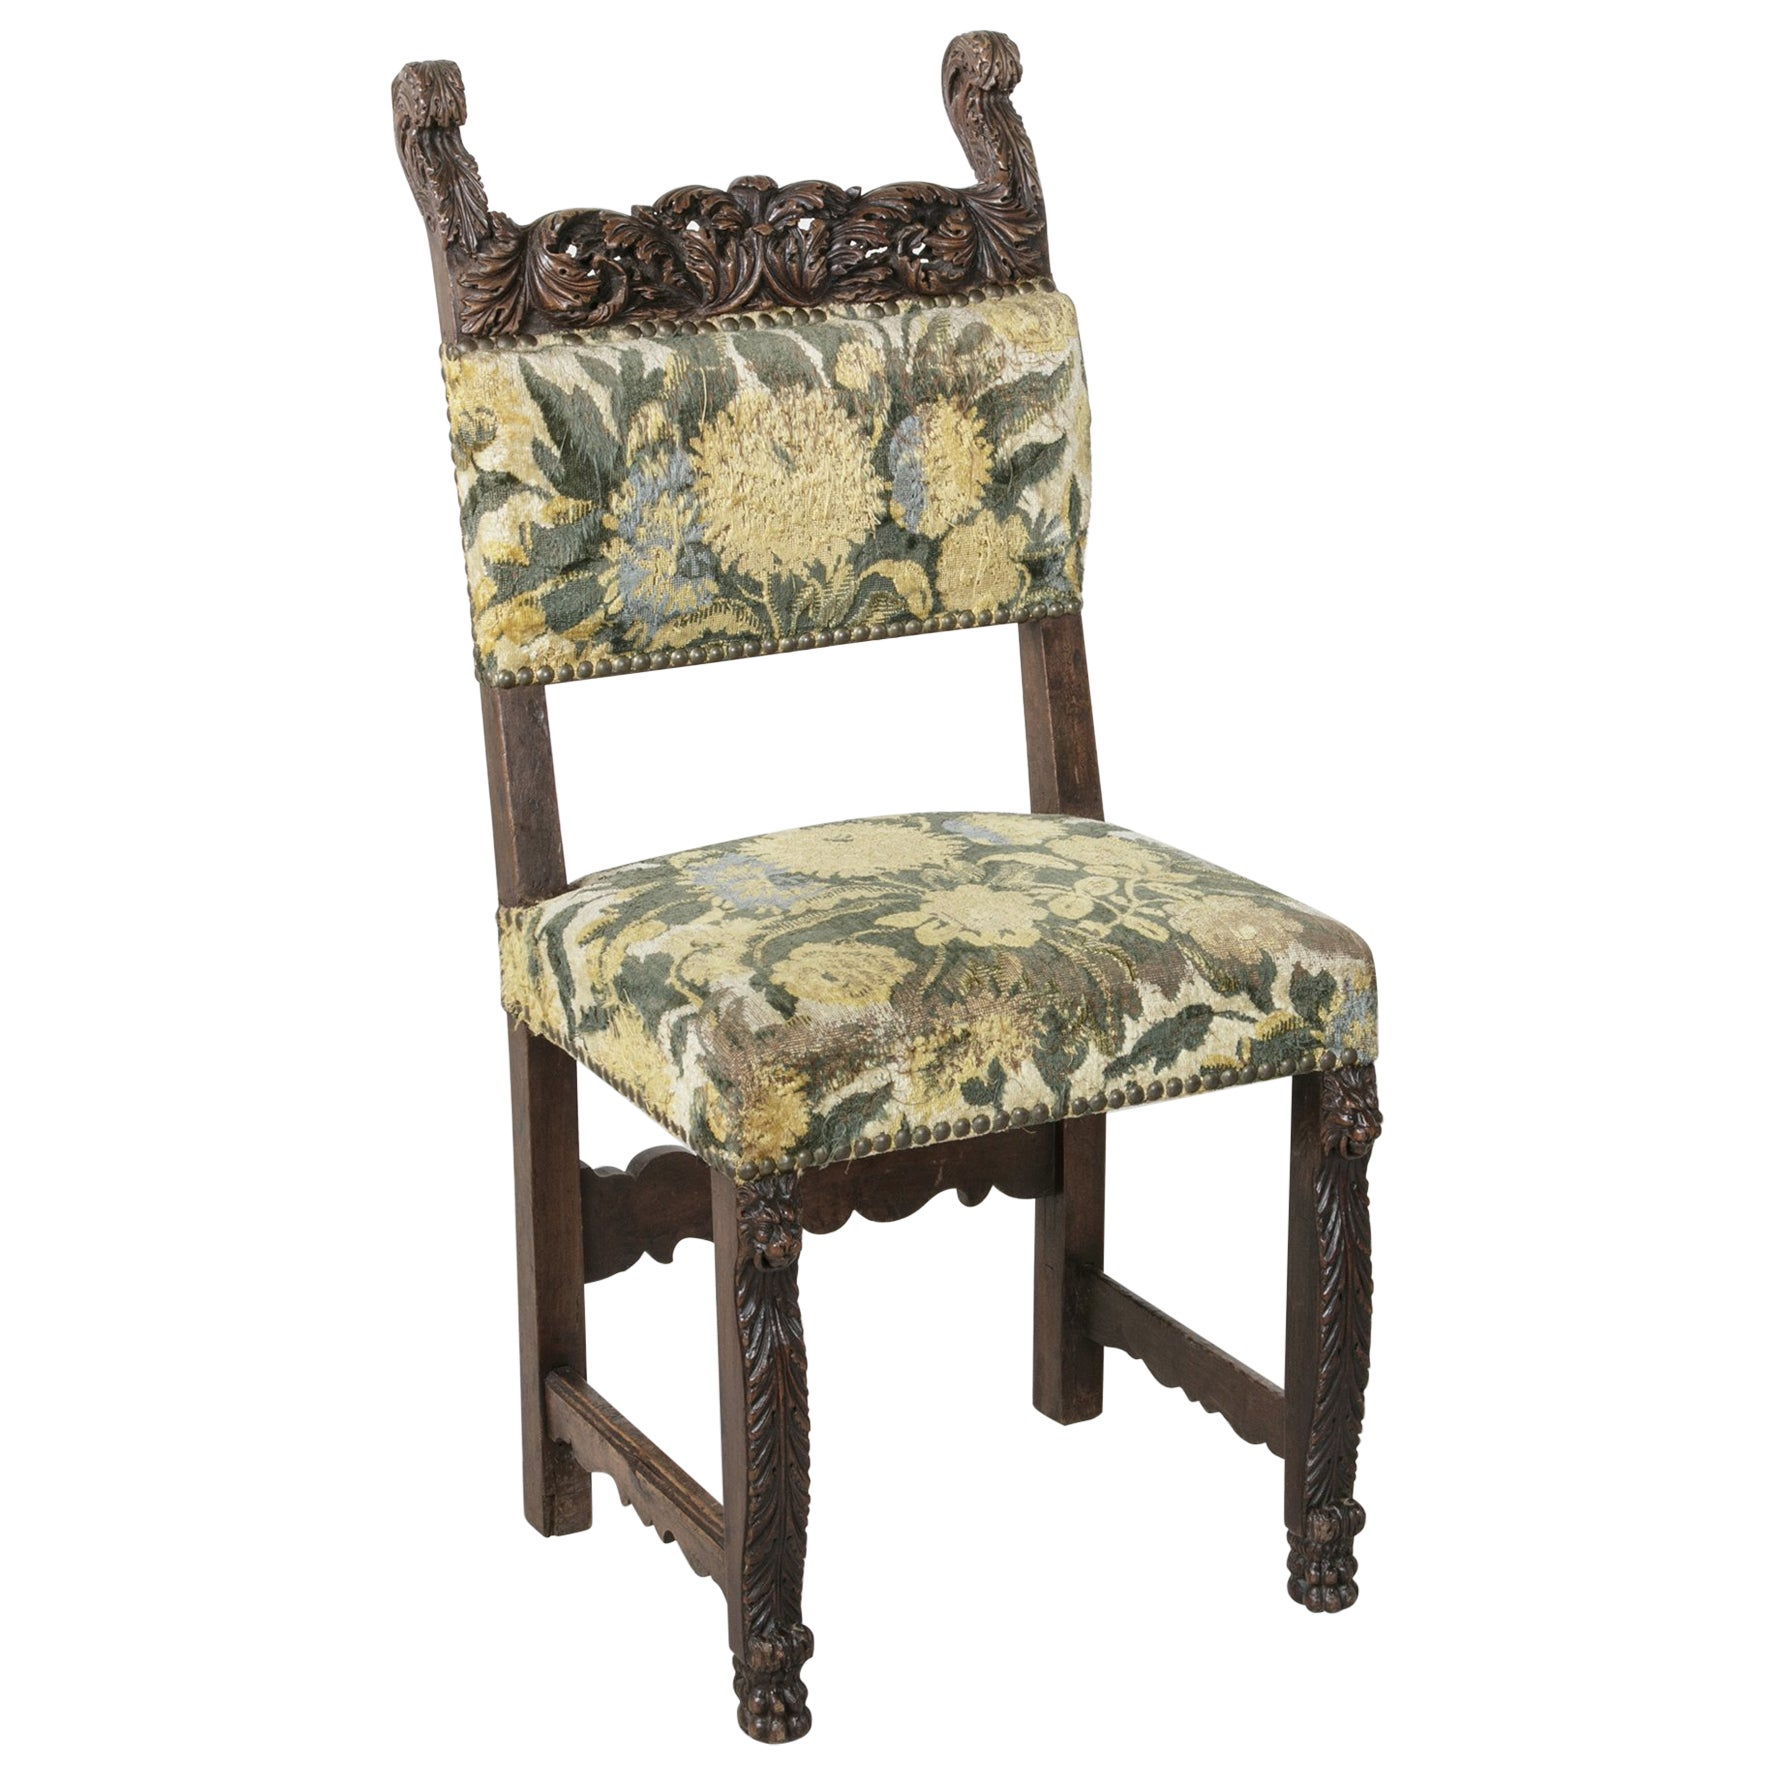 19th Century Sculptural Hand-Carved Walnut Louis XIII Style Side Chair